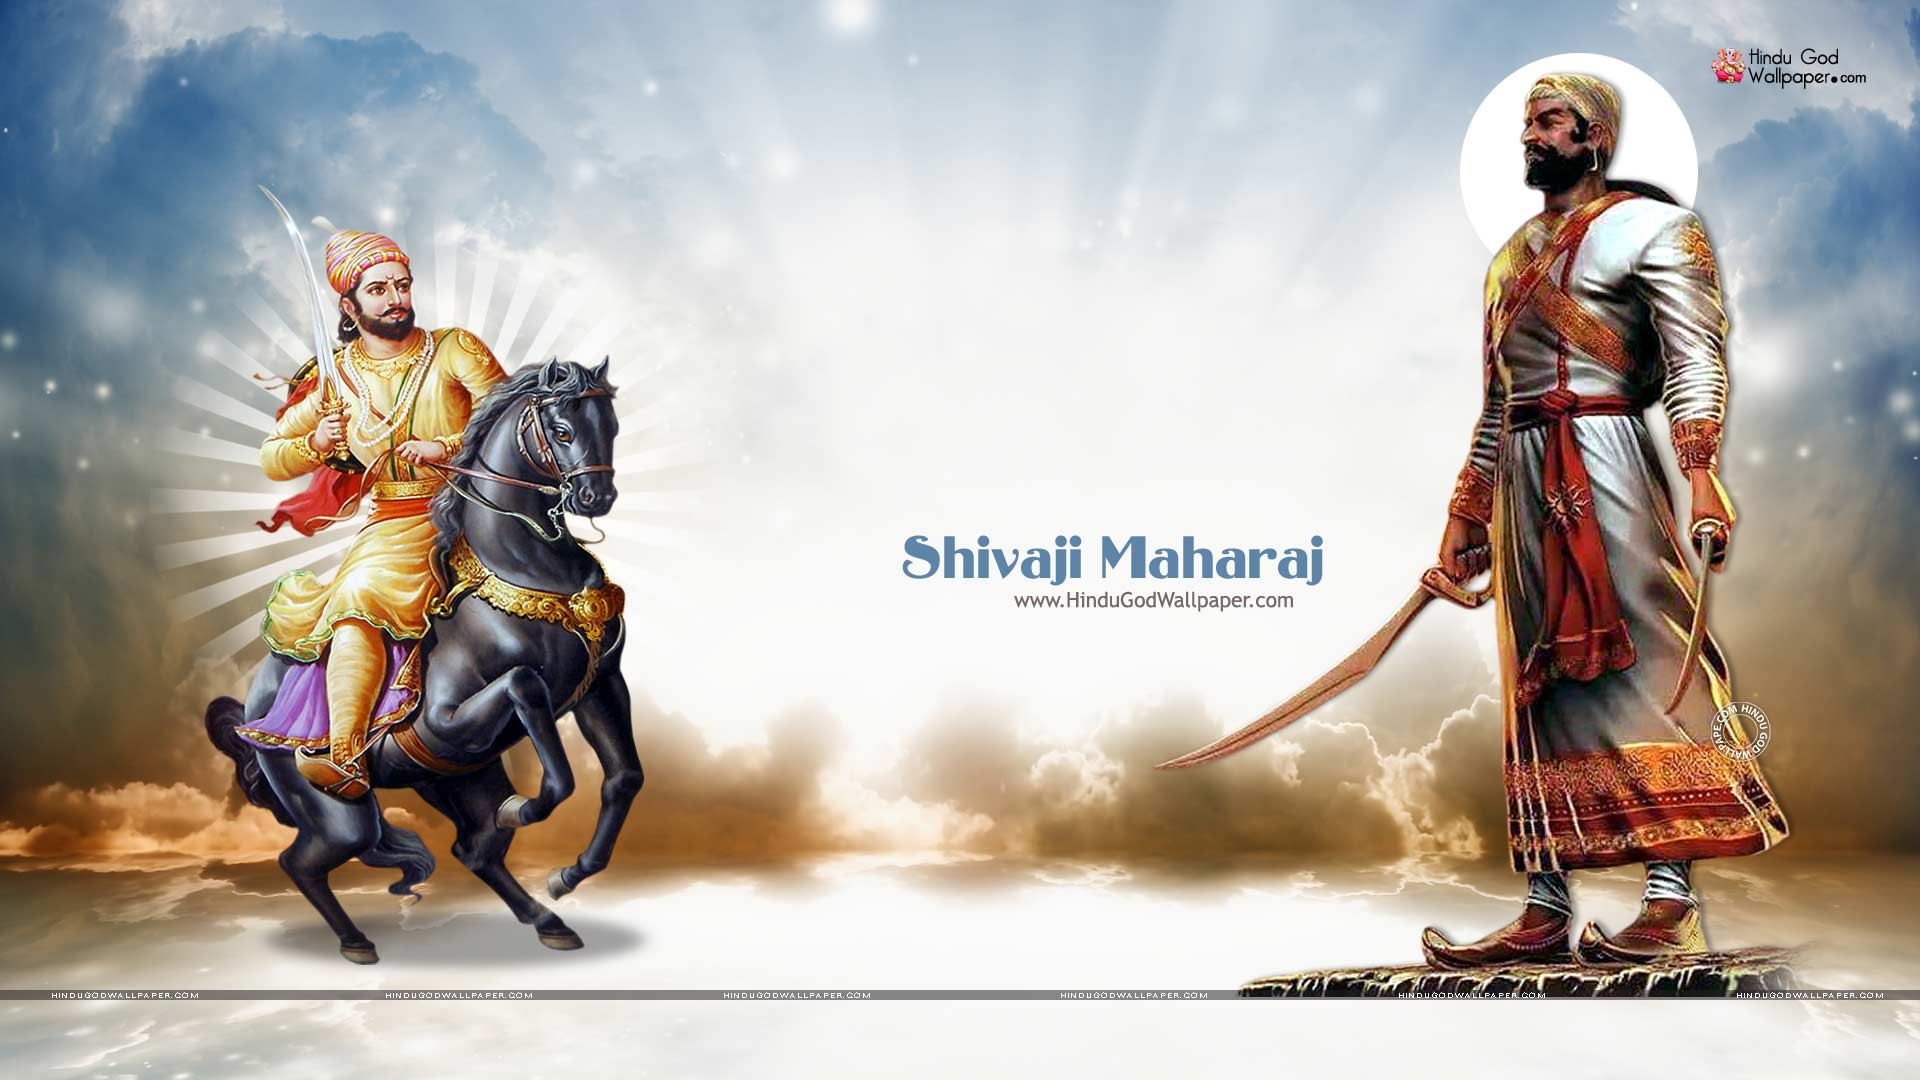 Hd wallpaper shivaji maharaj - Shivaji Maharaj Wallpaper Hd Full Size